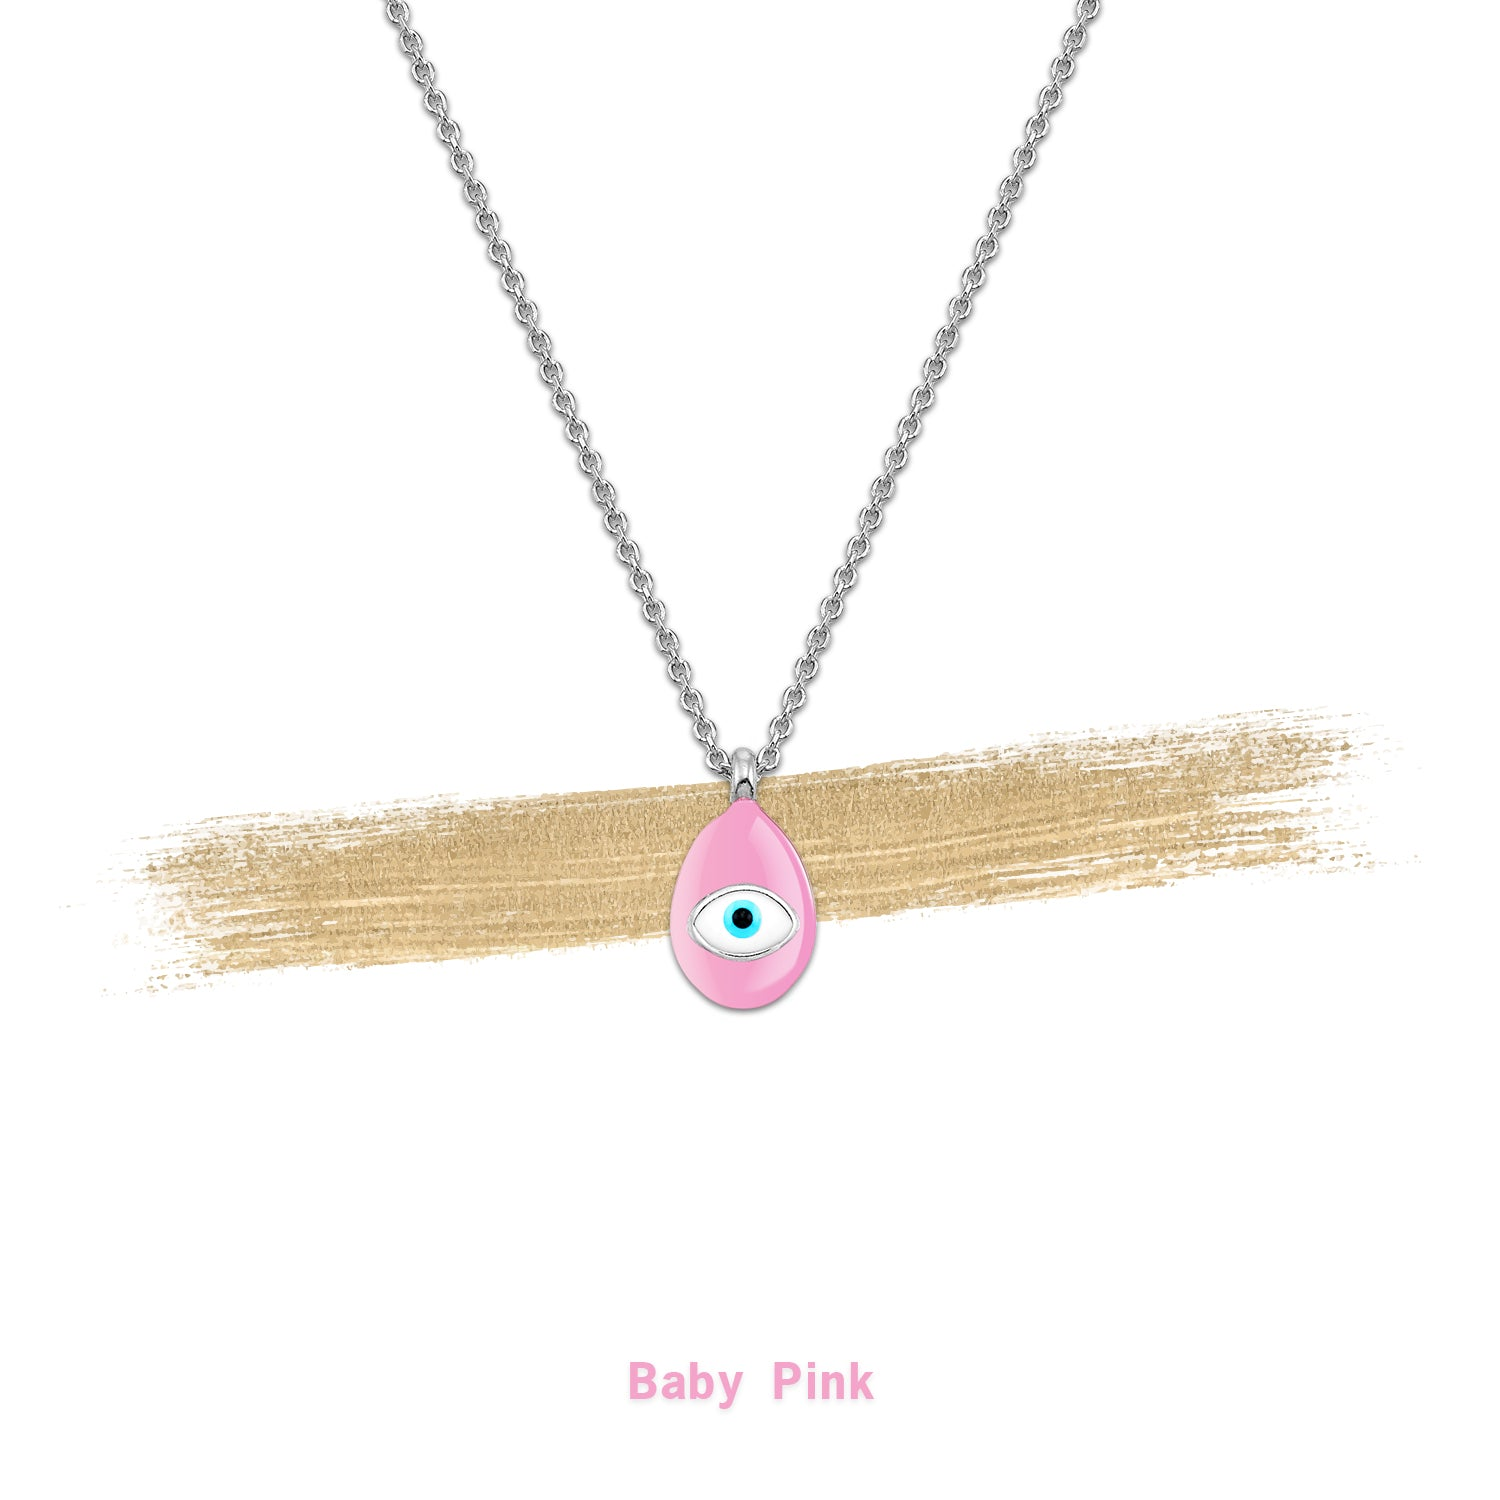 Special Collection | Mati | Baby Pink & Rhodium Plated 925 Silver - Spirito Rosa | Βραβευμένα Κοσμήματα σε Απίστευτες Τιμές